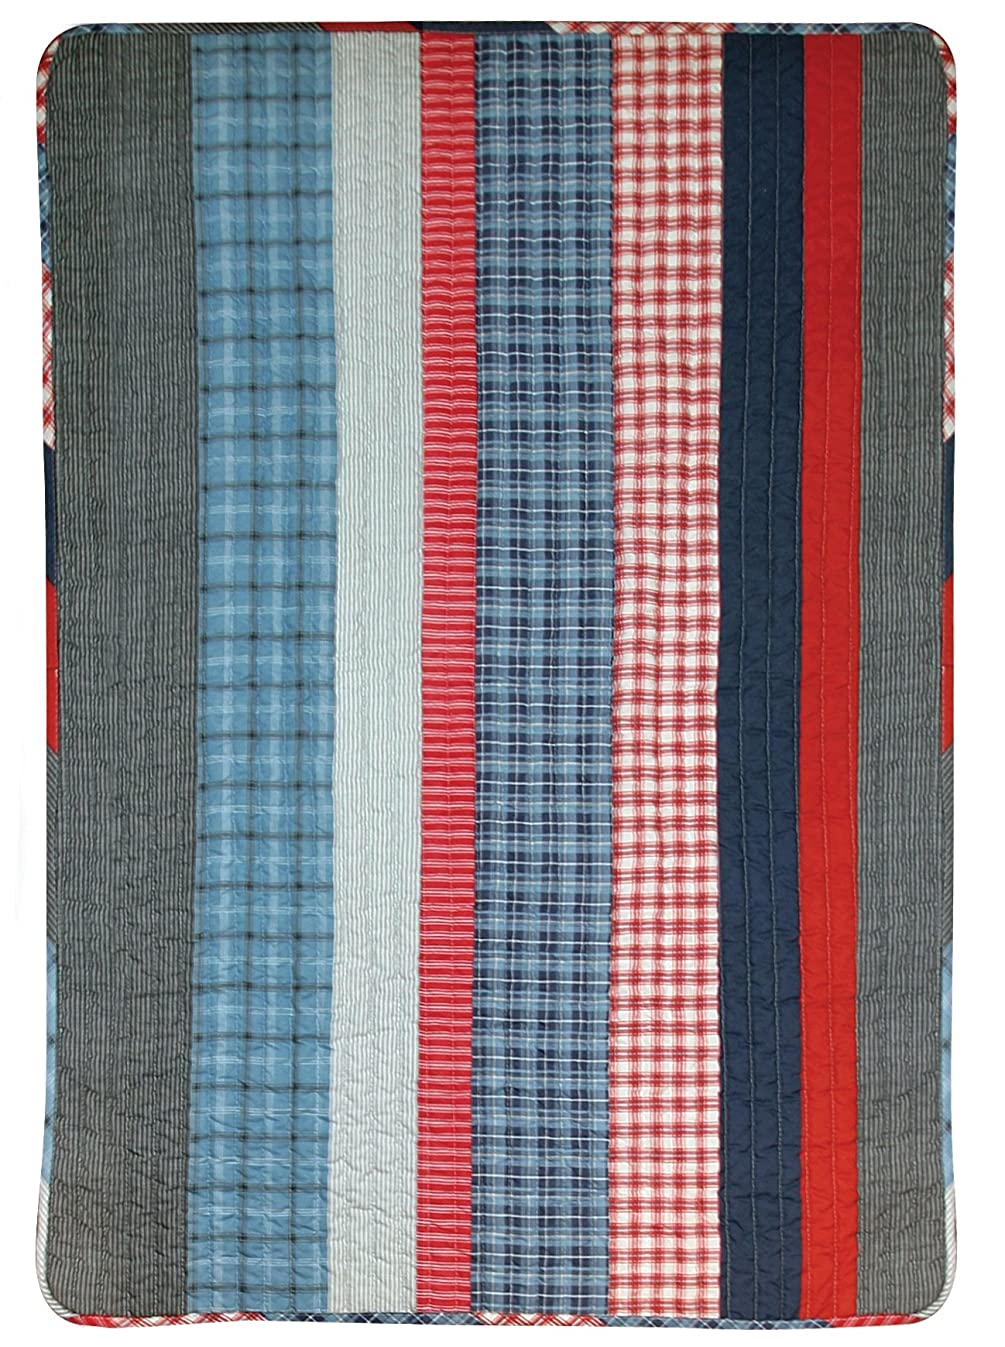 Stephan Baby Stars and Stripes Collection Crib Quilt, Red, White and Blue Plaids